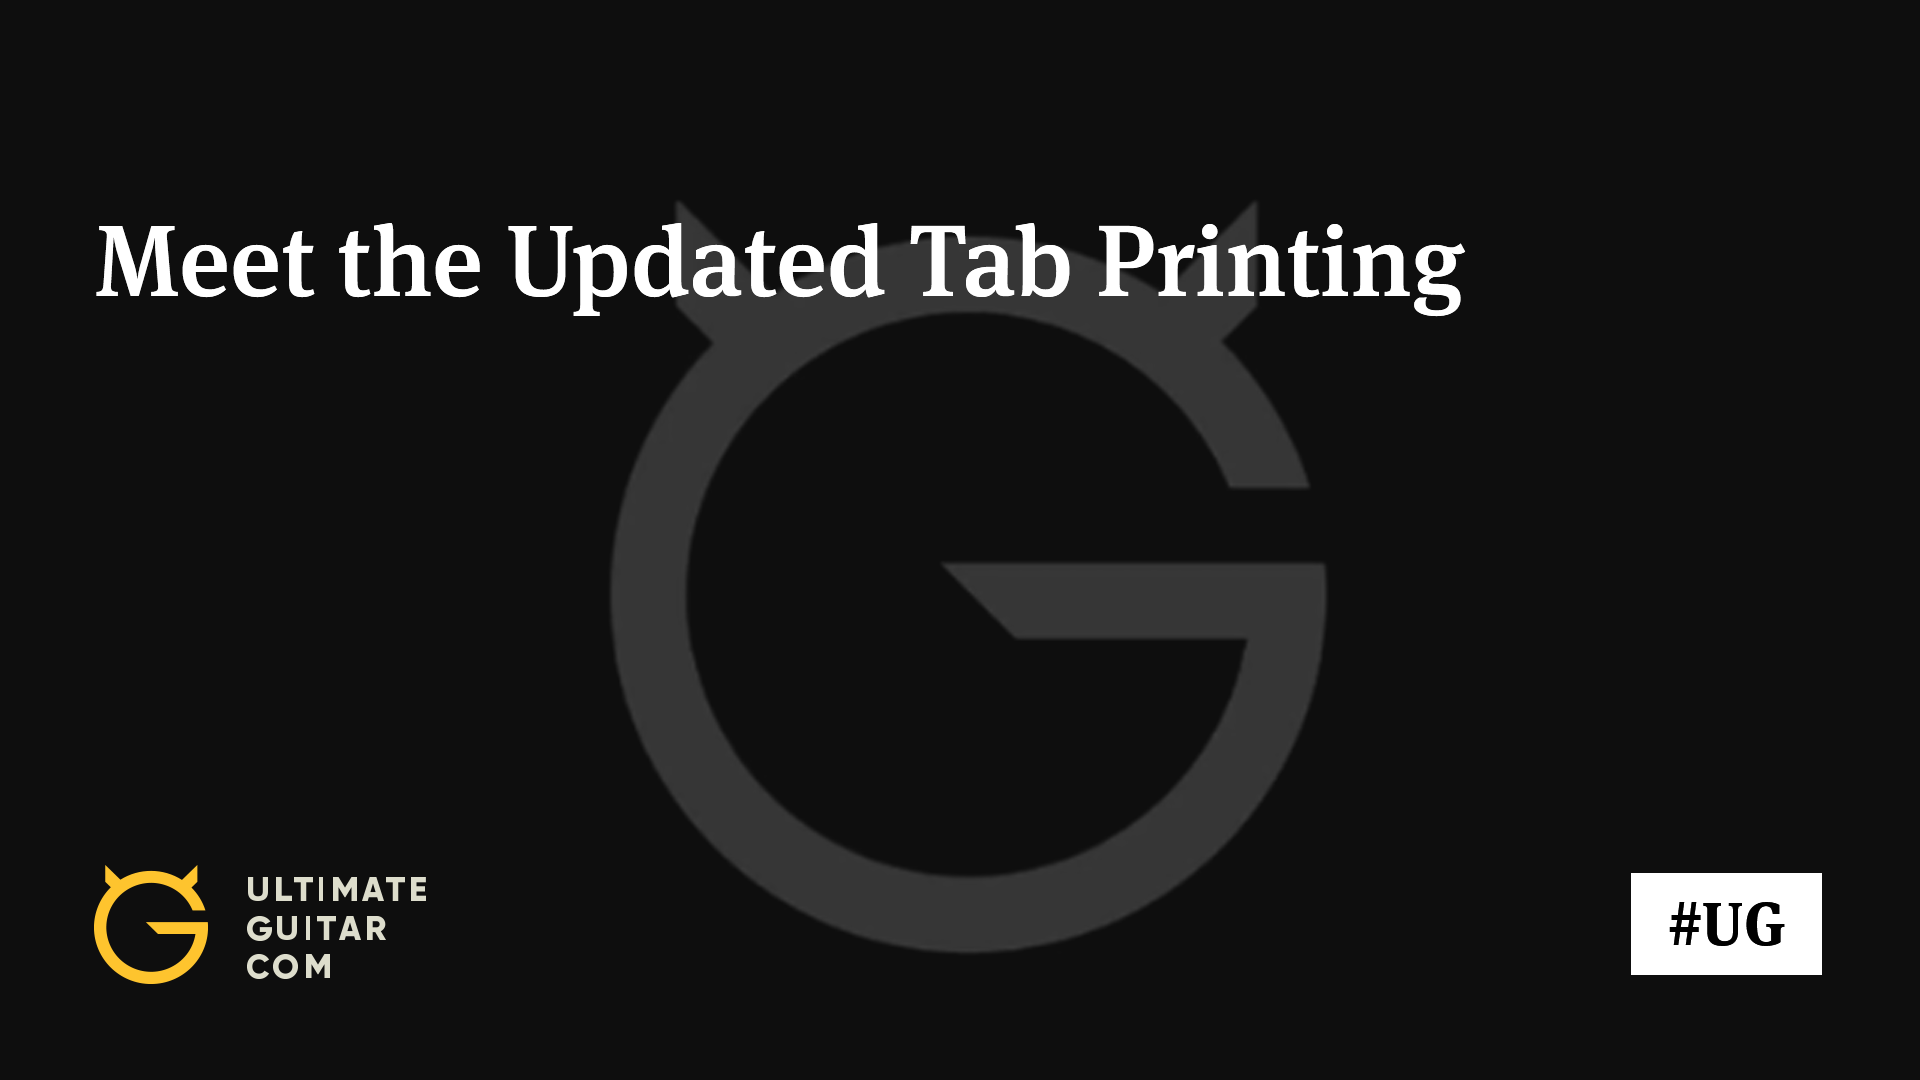 Meet the updated tab printing music news ultimate guitar hexwebz Image collections